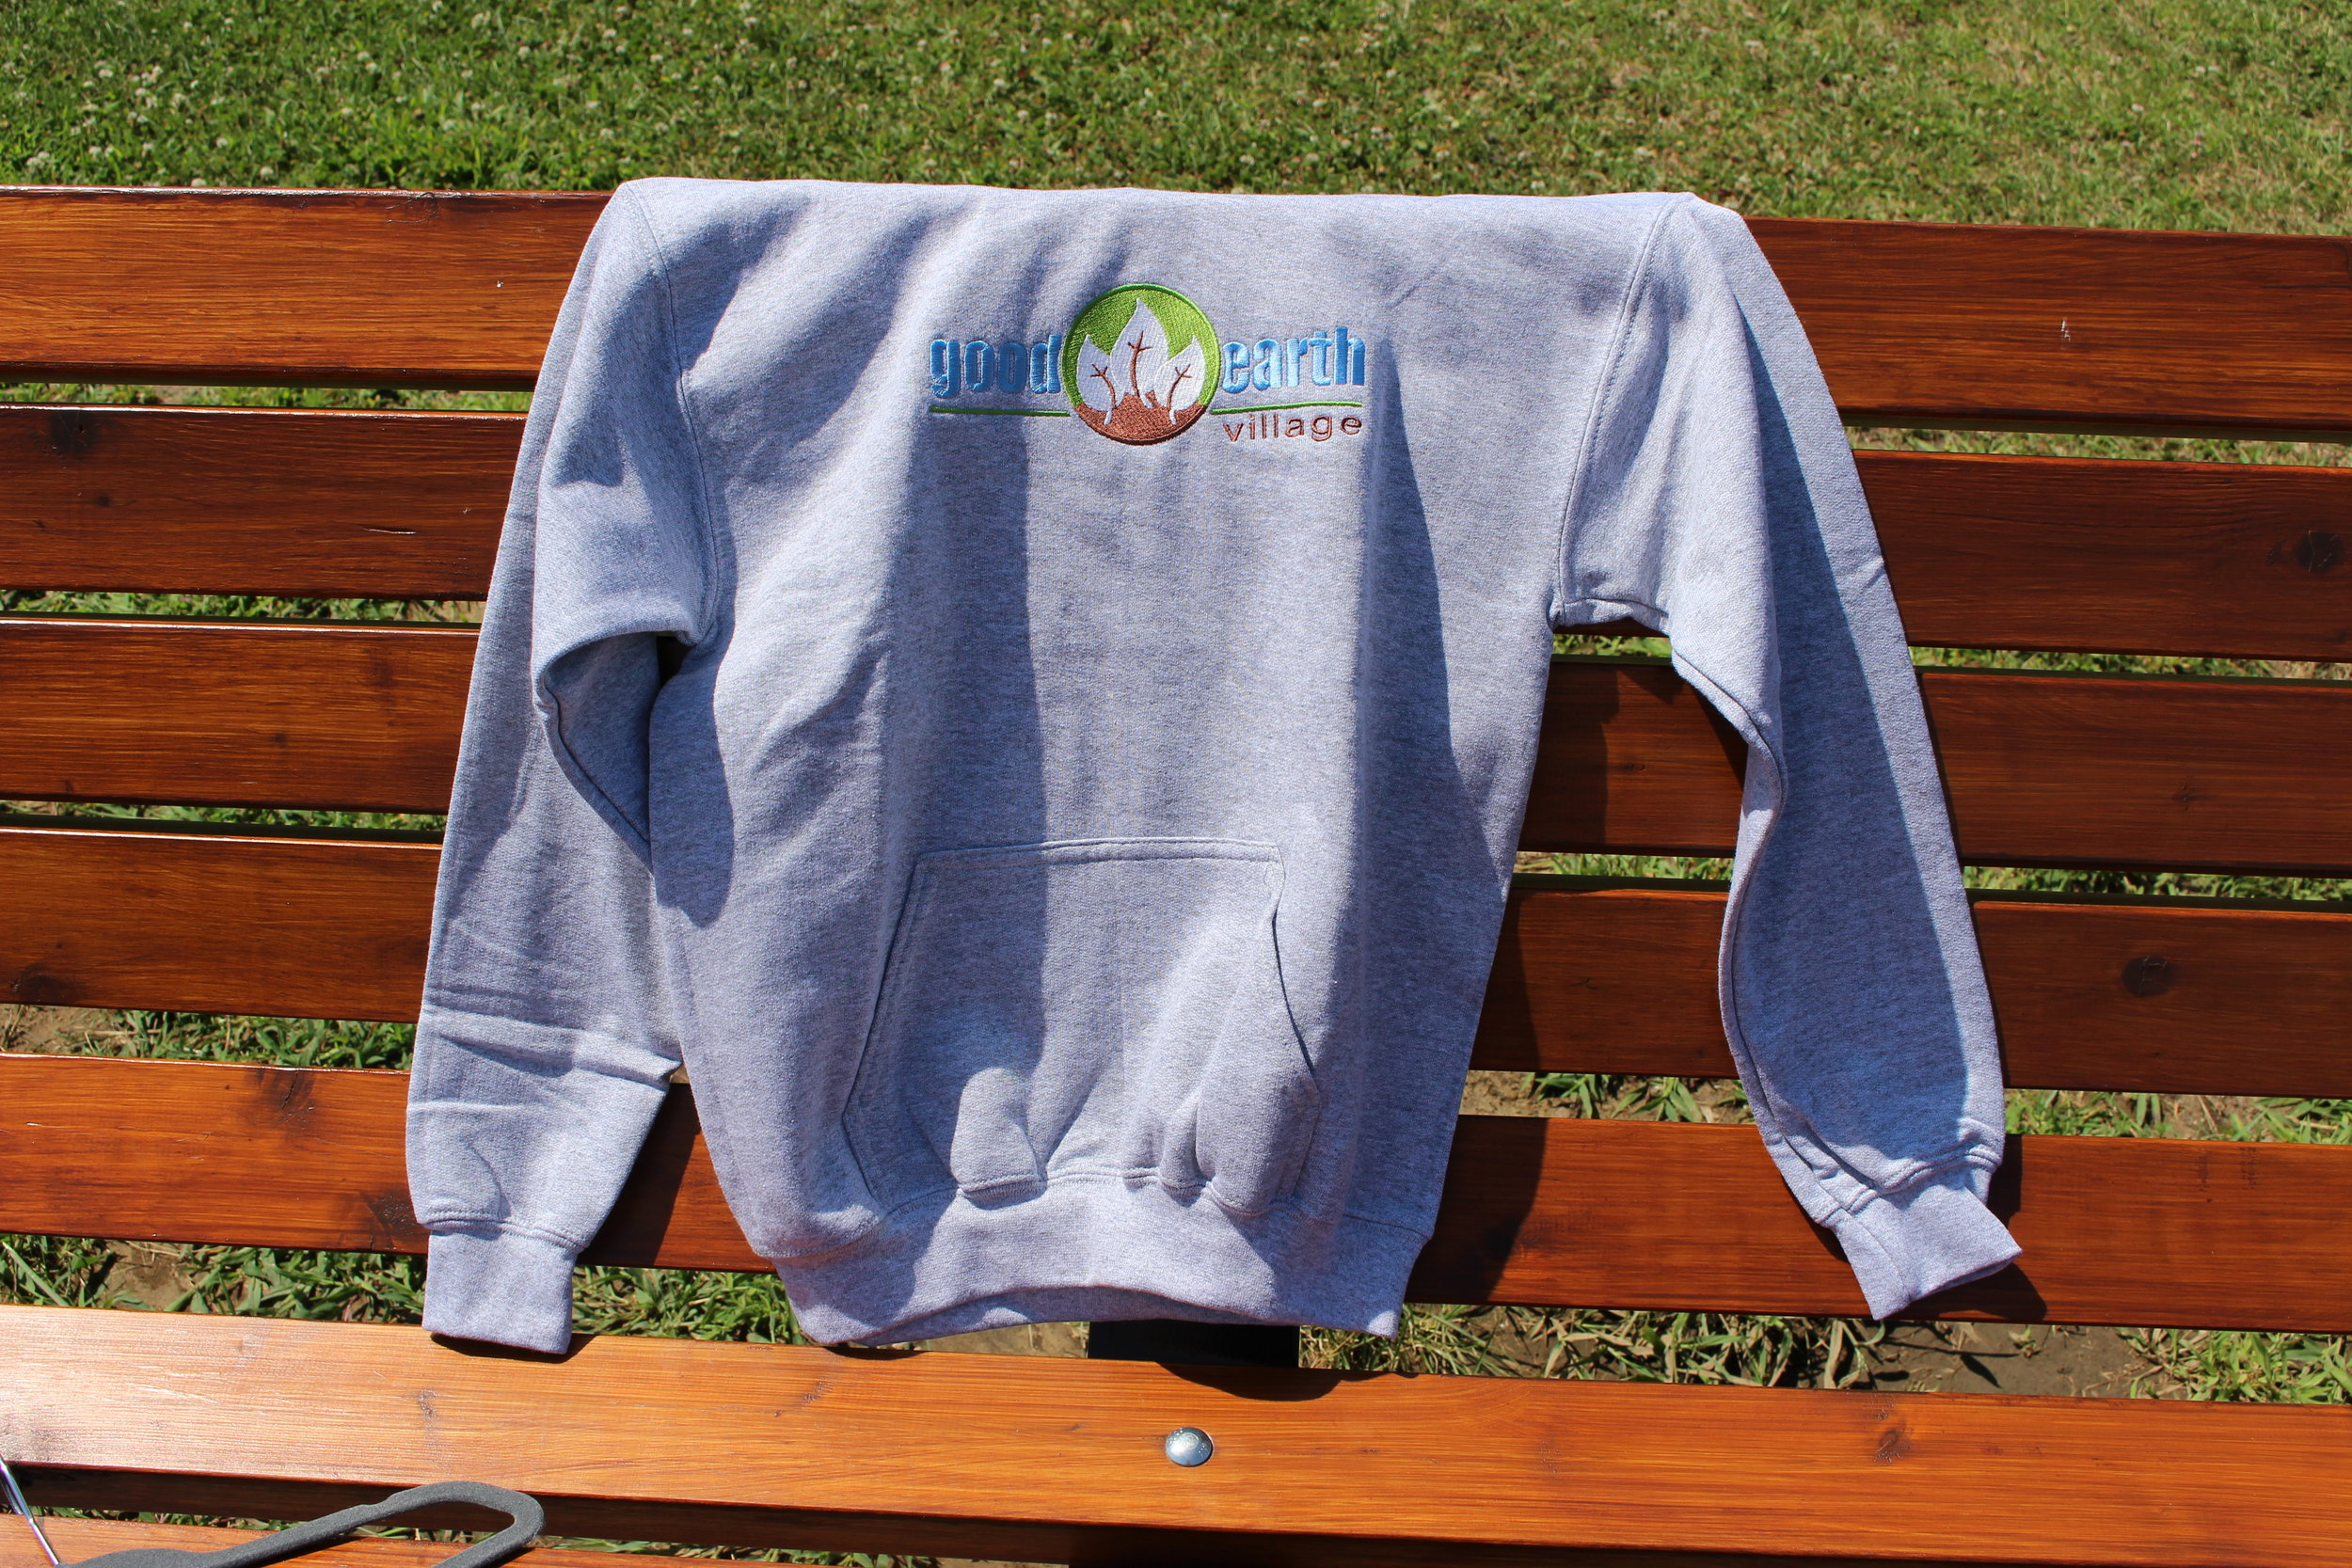 Item:  Hoodie Embroidered Sweatshirt  Sizes:  Youth Small - Youth Large  Price:  $30